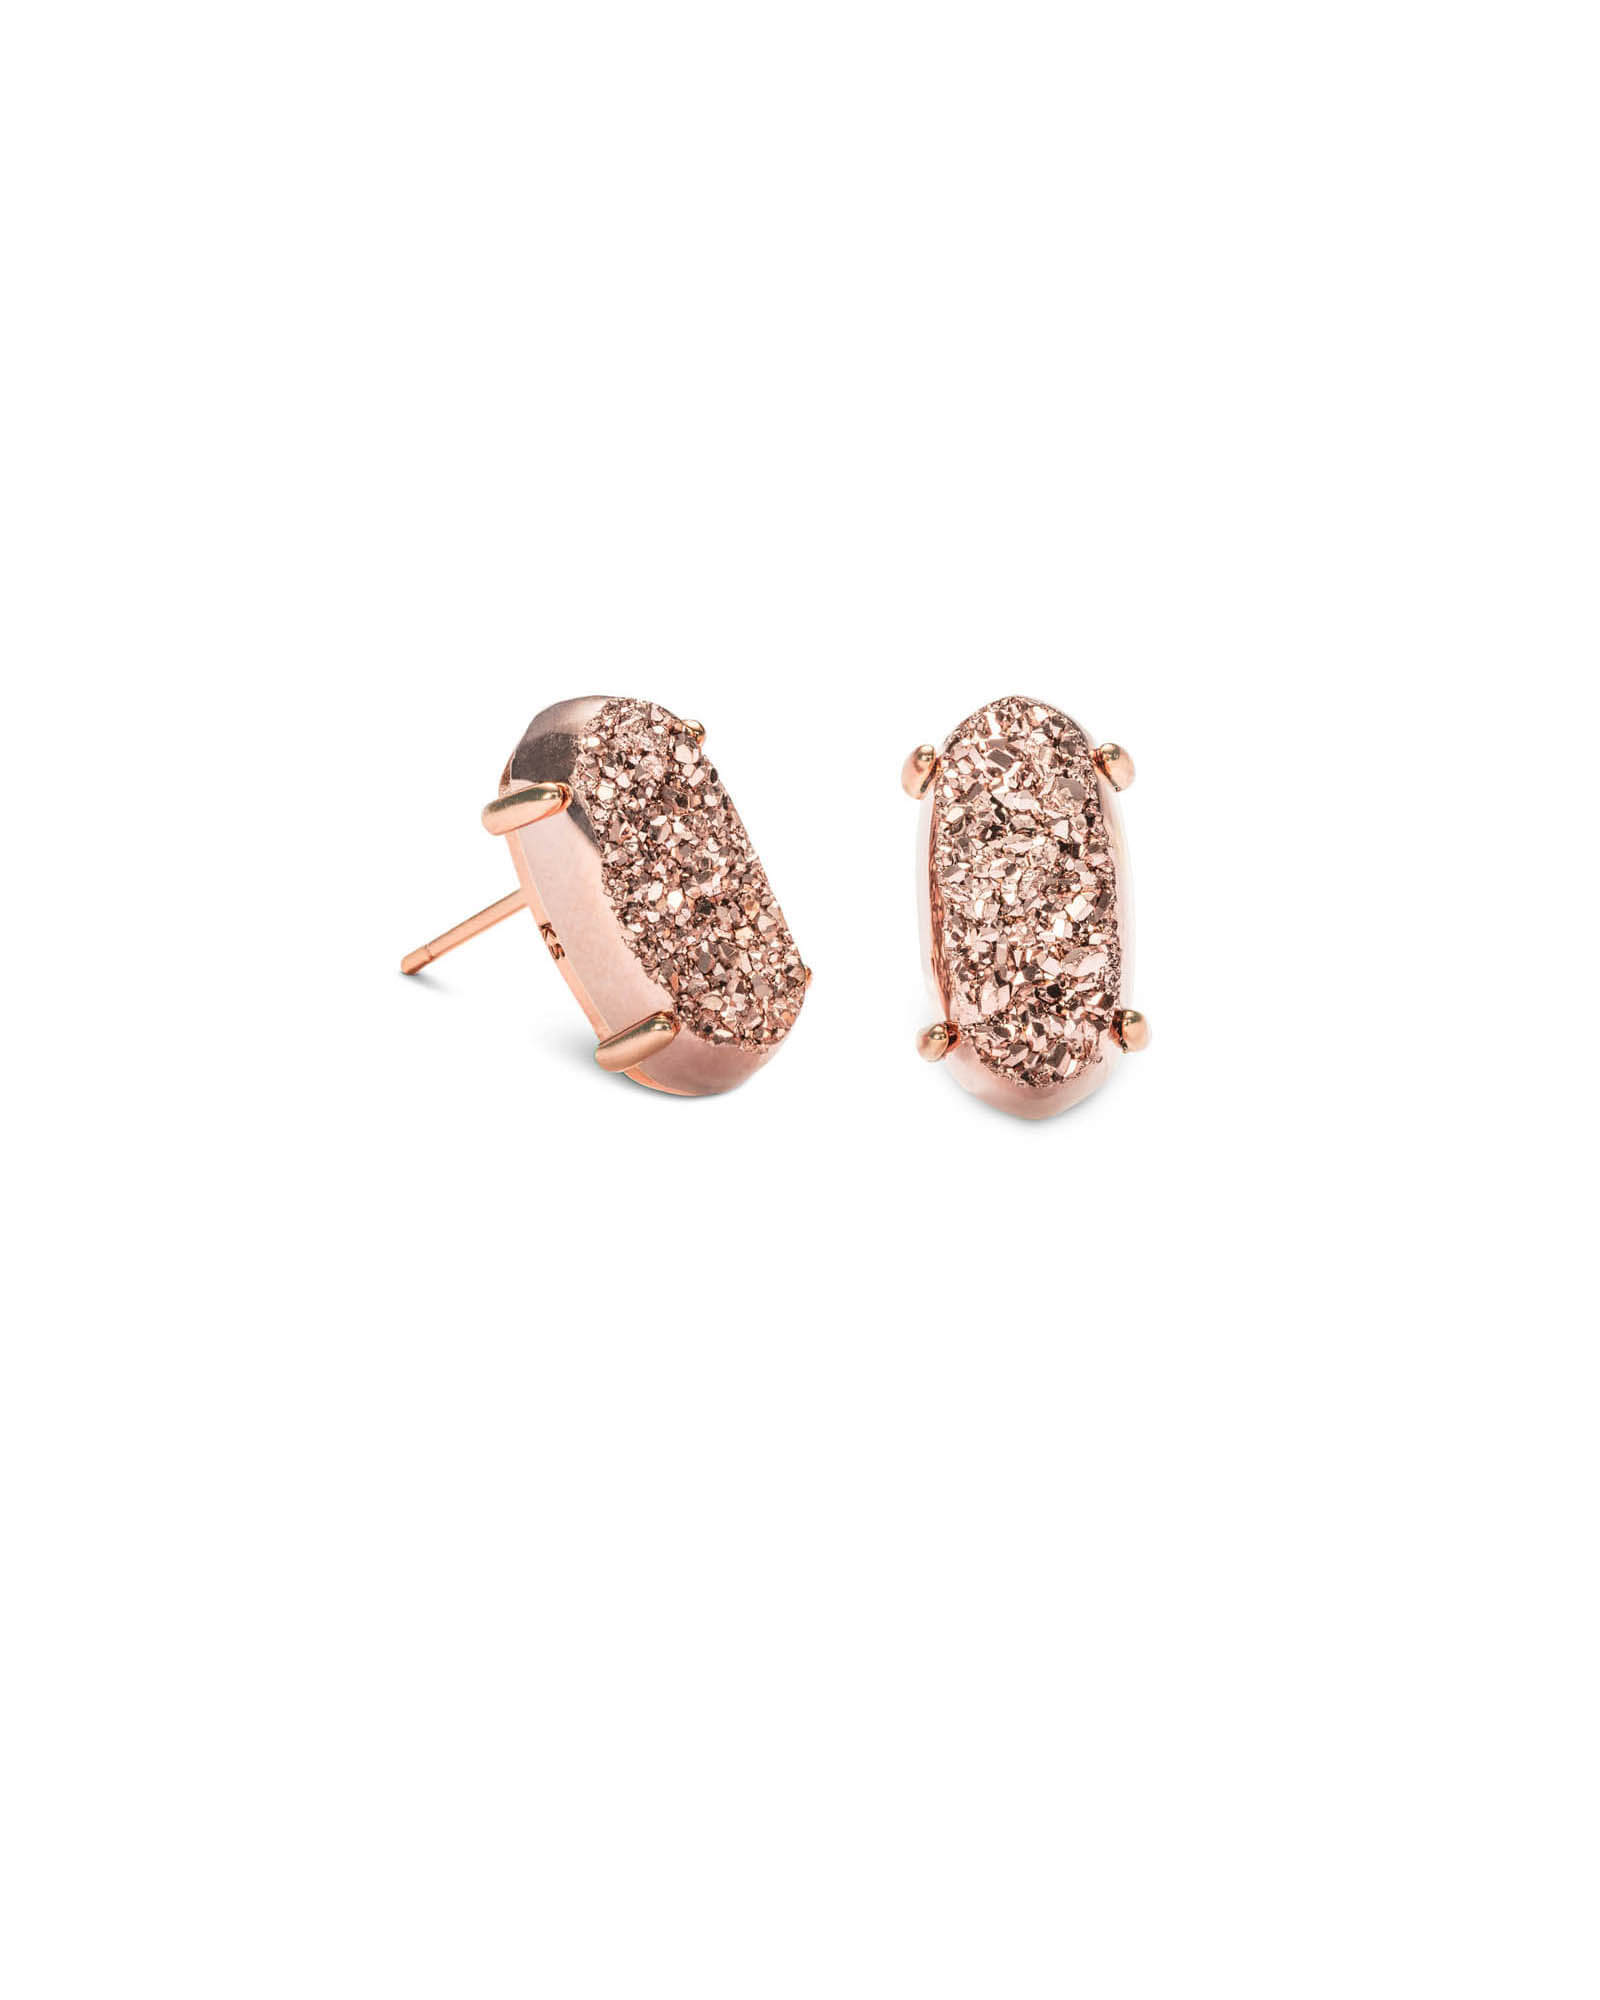 Betty Rose Gold Stud Earrings in Rose Gold Drusy